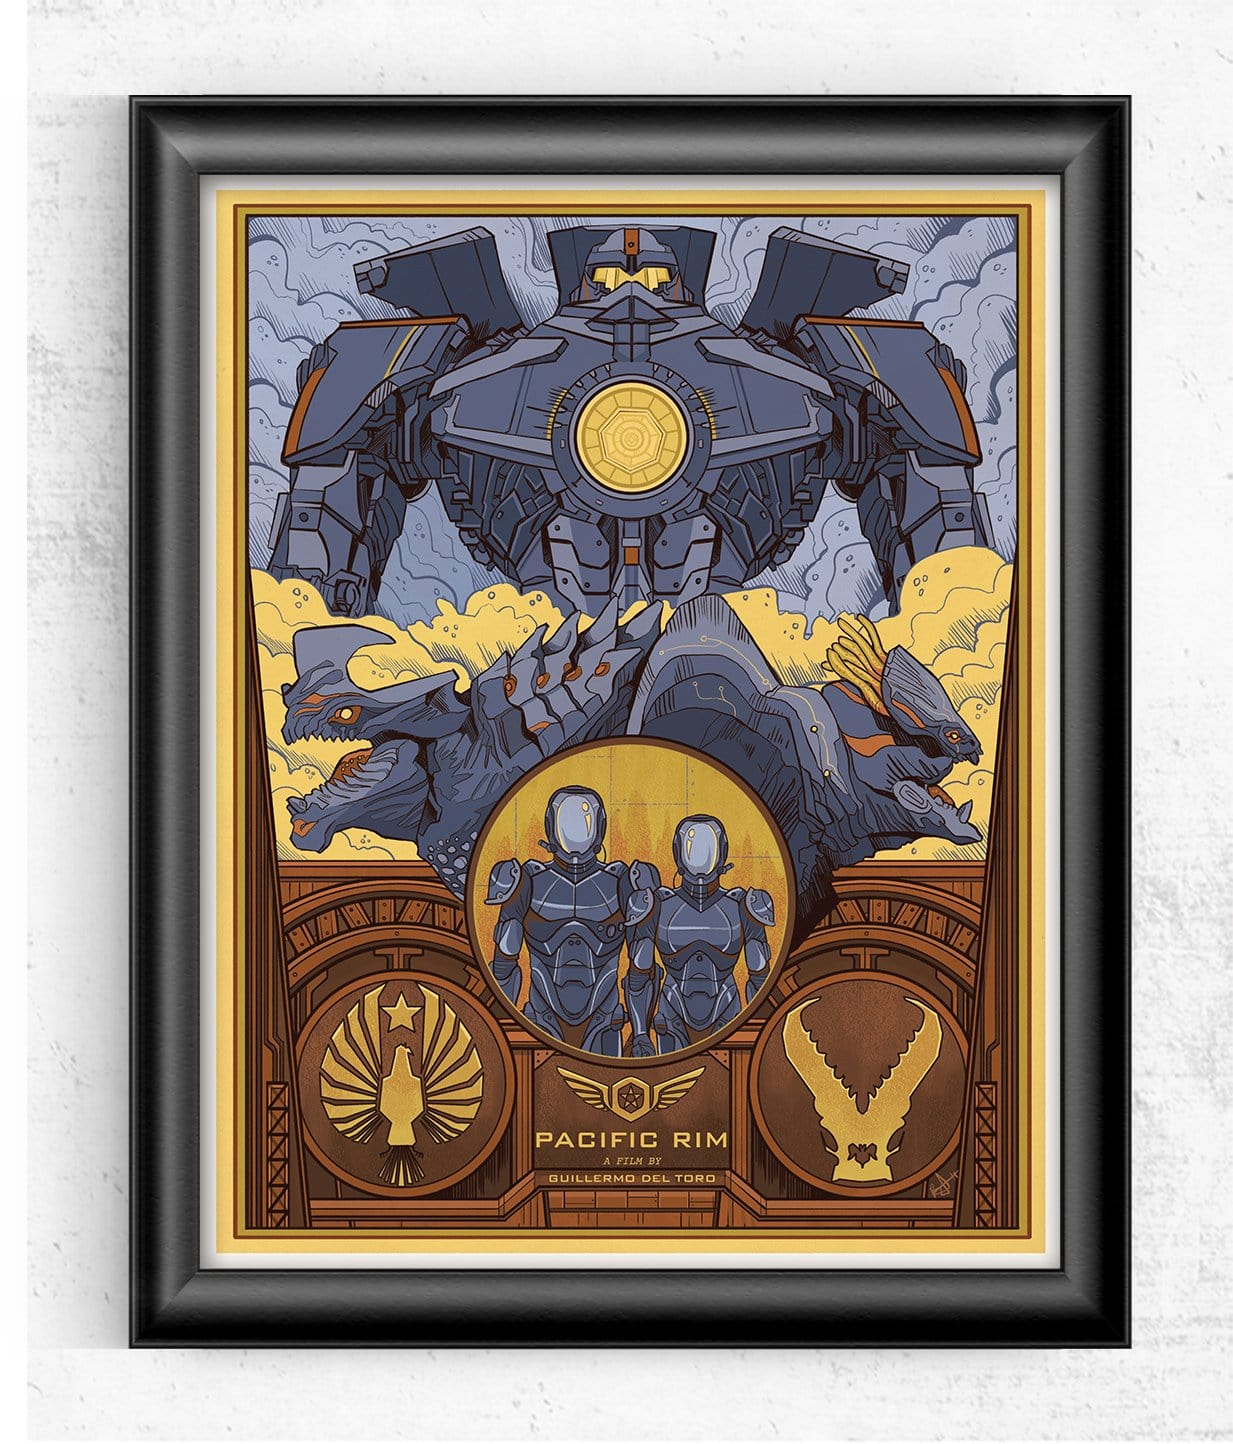 Pacific Rim - Guillermo del Toro Limited Print Posters by Beverly Arce - Pixel Empire